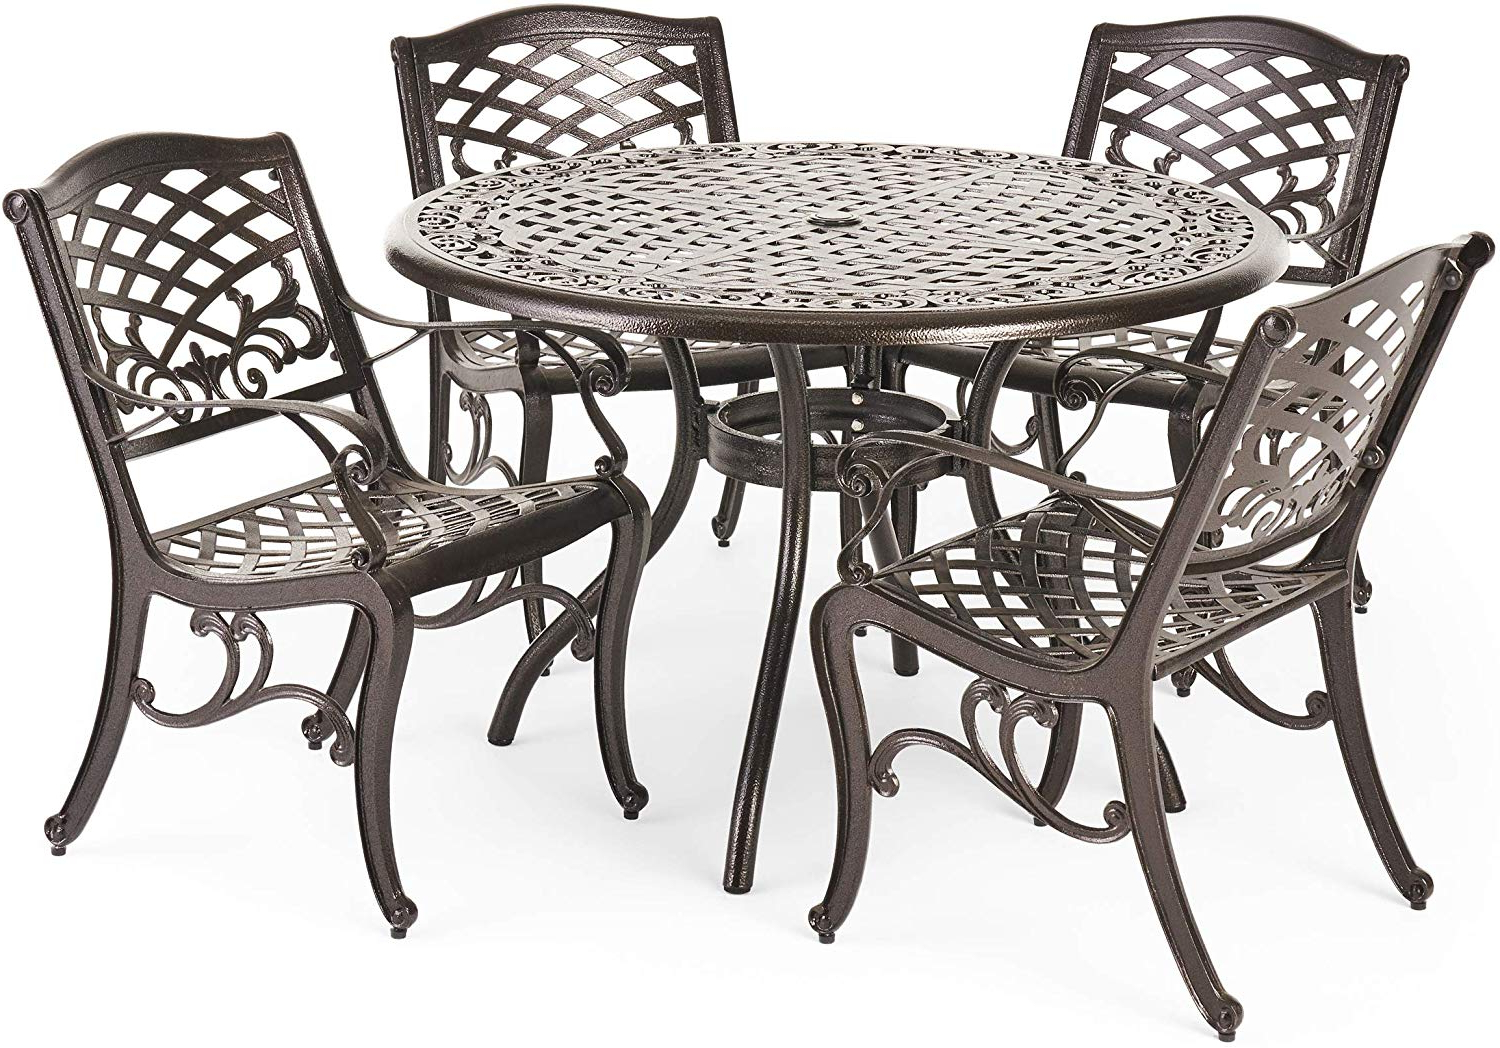 Black Top Large Dining Tables With Metal Base Copper Finish Inside Newest Hallandale Outdoor Furniture Dining Set, Cast Aluminum Table And Chairs For Patio Or Deck (5 Piece Set) (View 21 of 30)